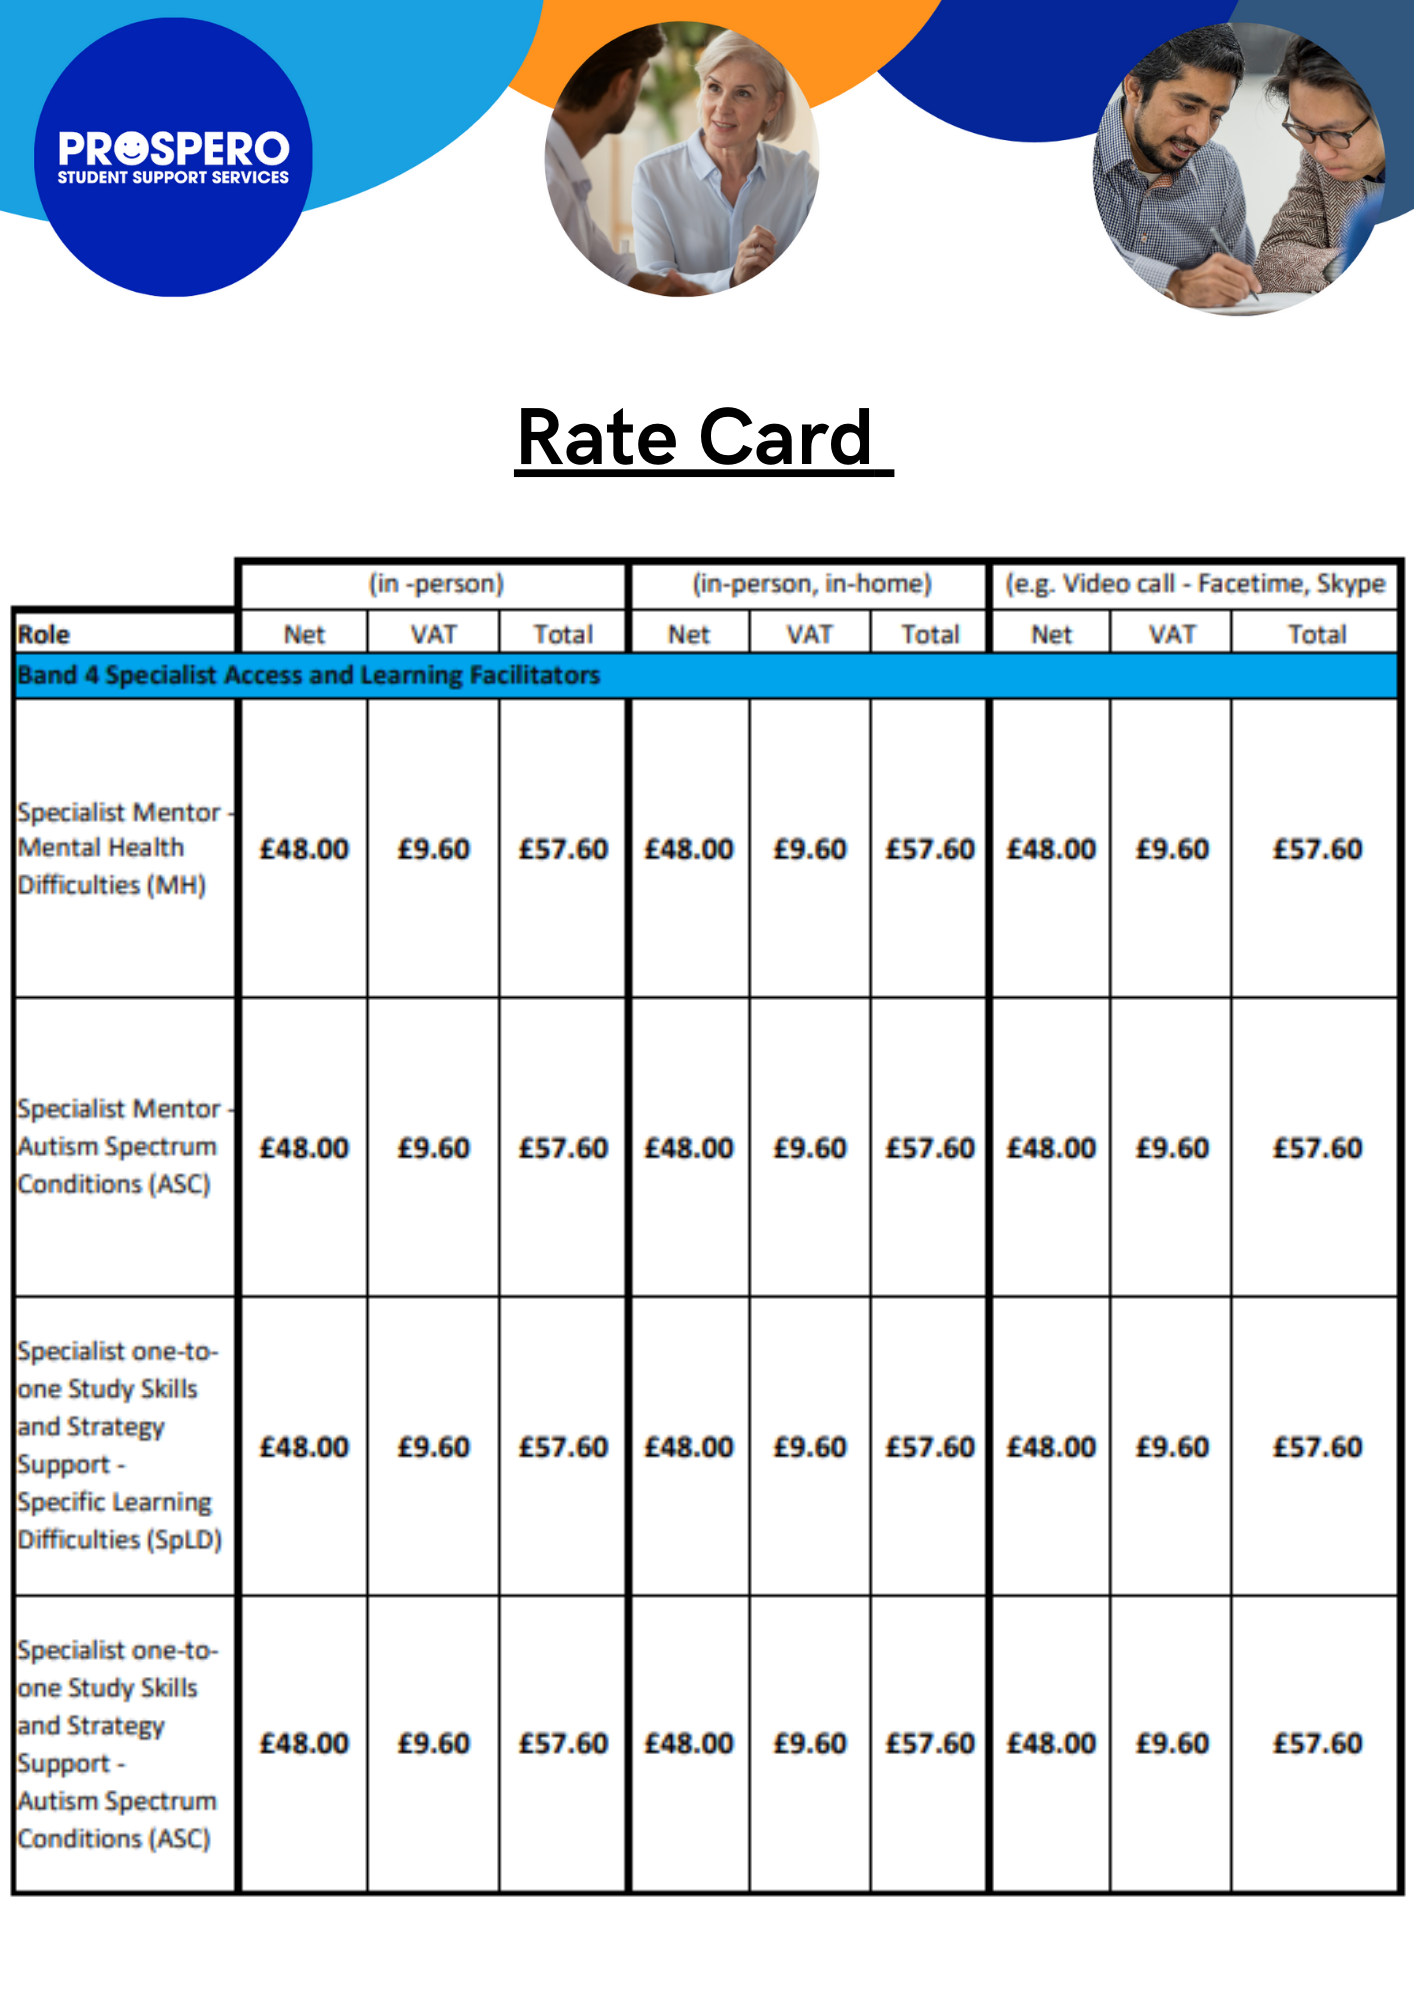 Student Support Services at Prospero rate card